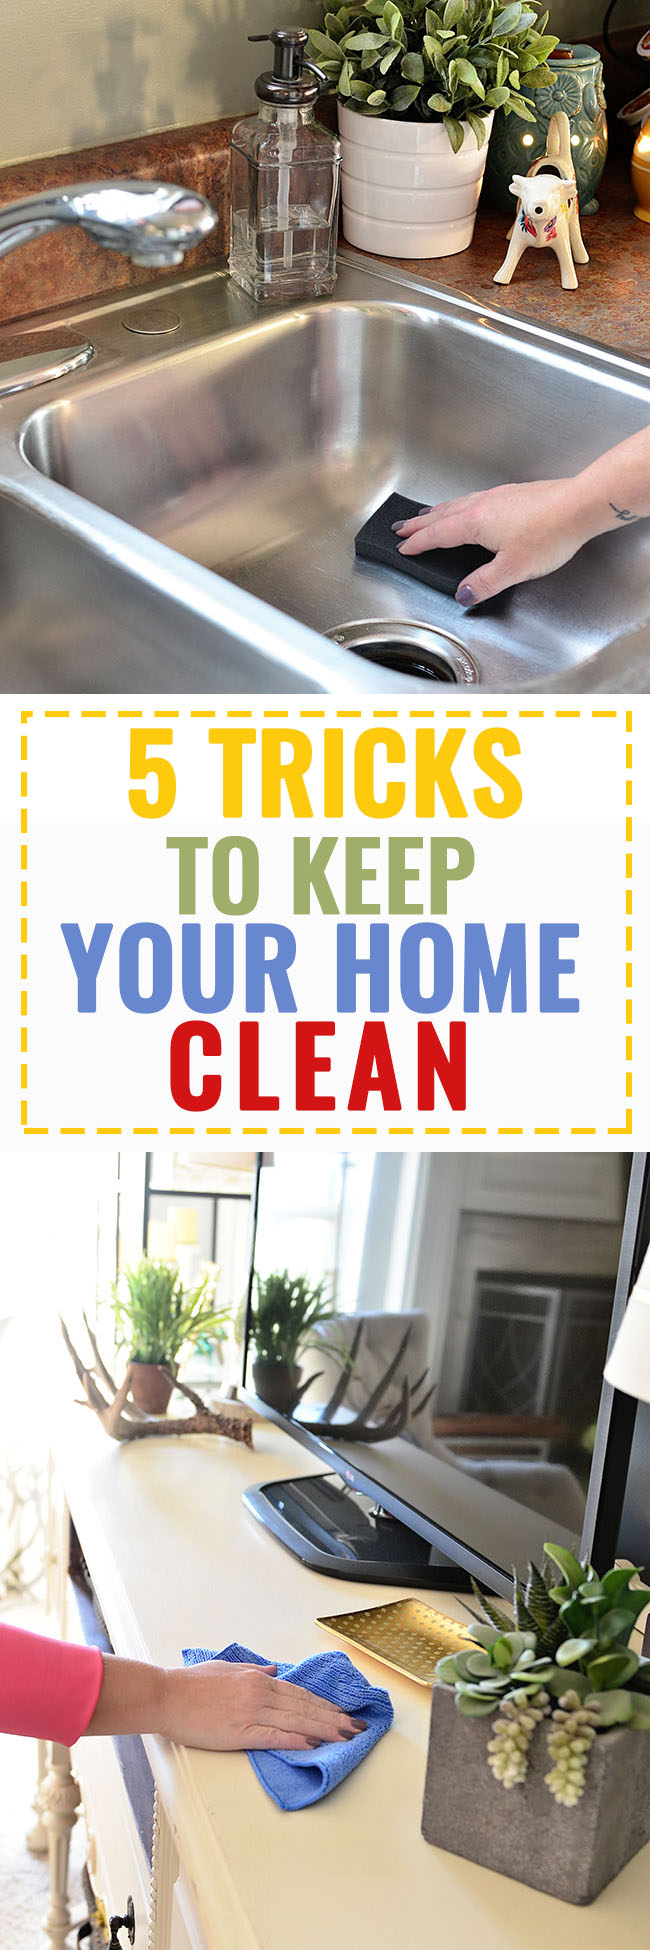 5 Tricks to Keep Your Home Clean at TidyMom.net